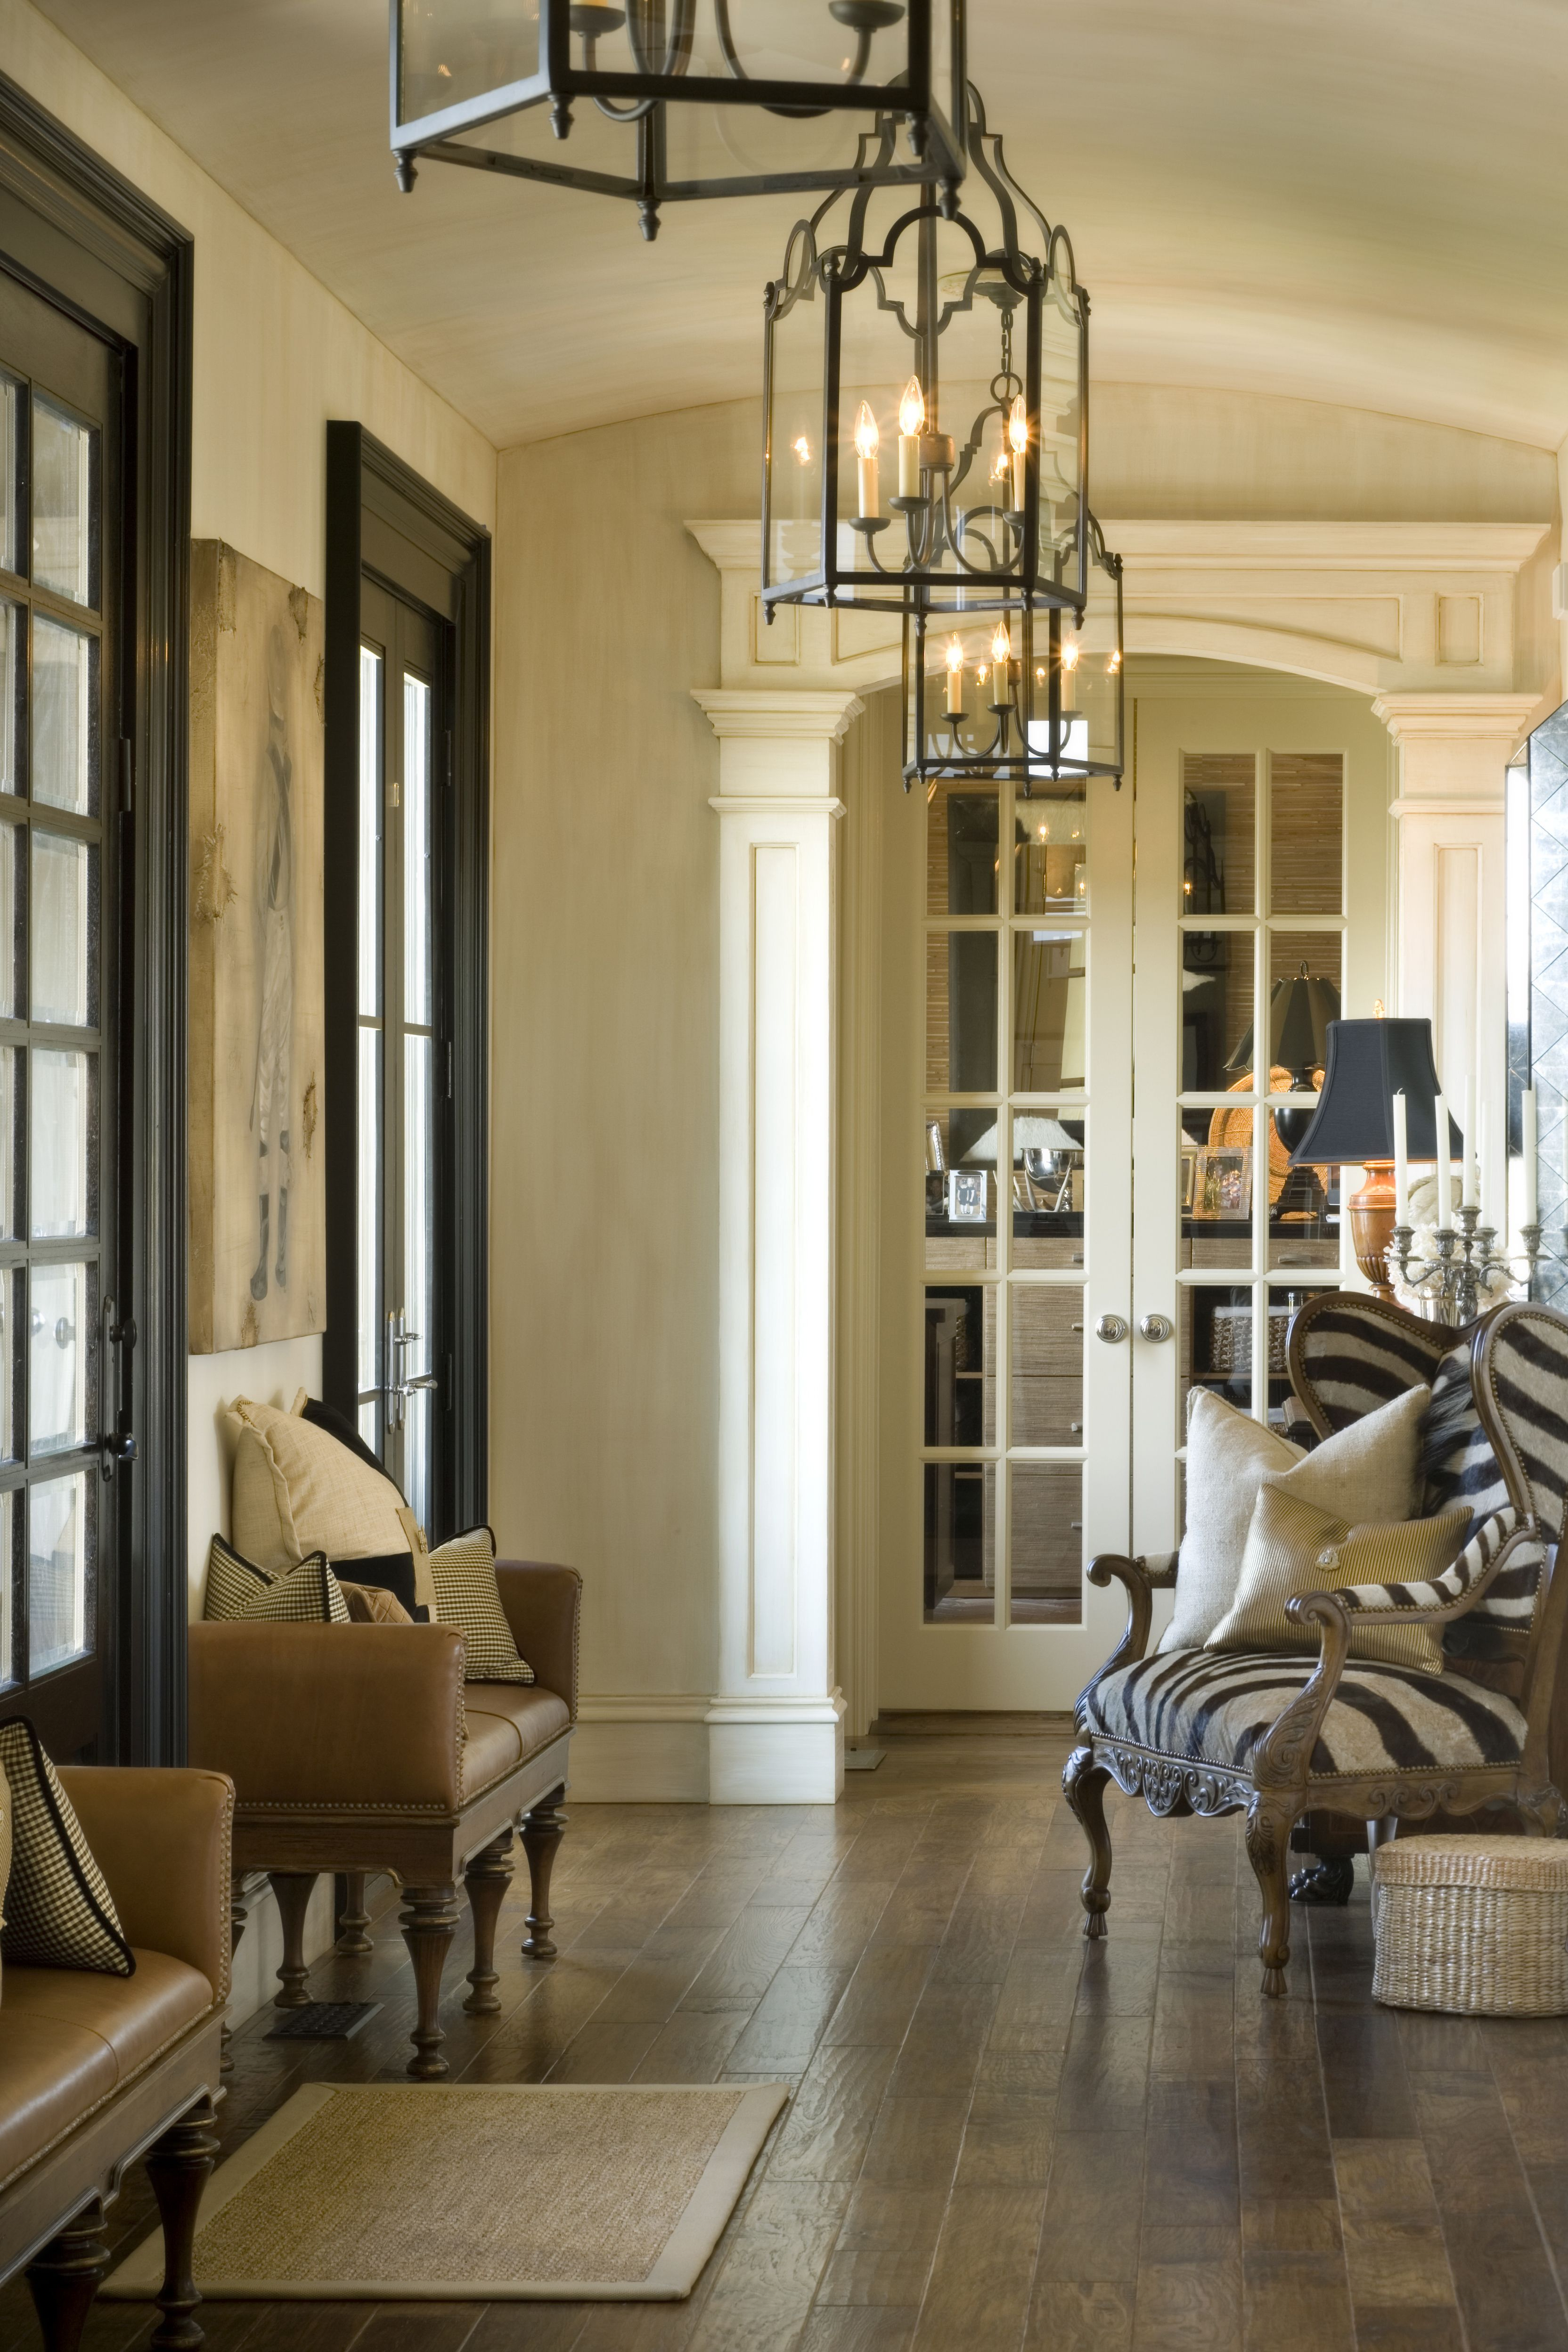 Just look at that zebra chair! Check out her site....my total dream home...love every single room!